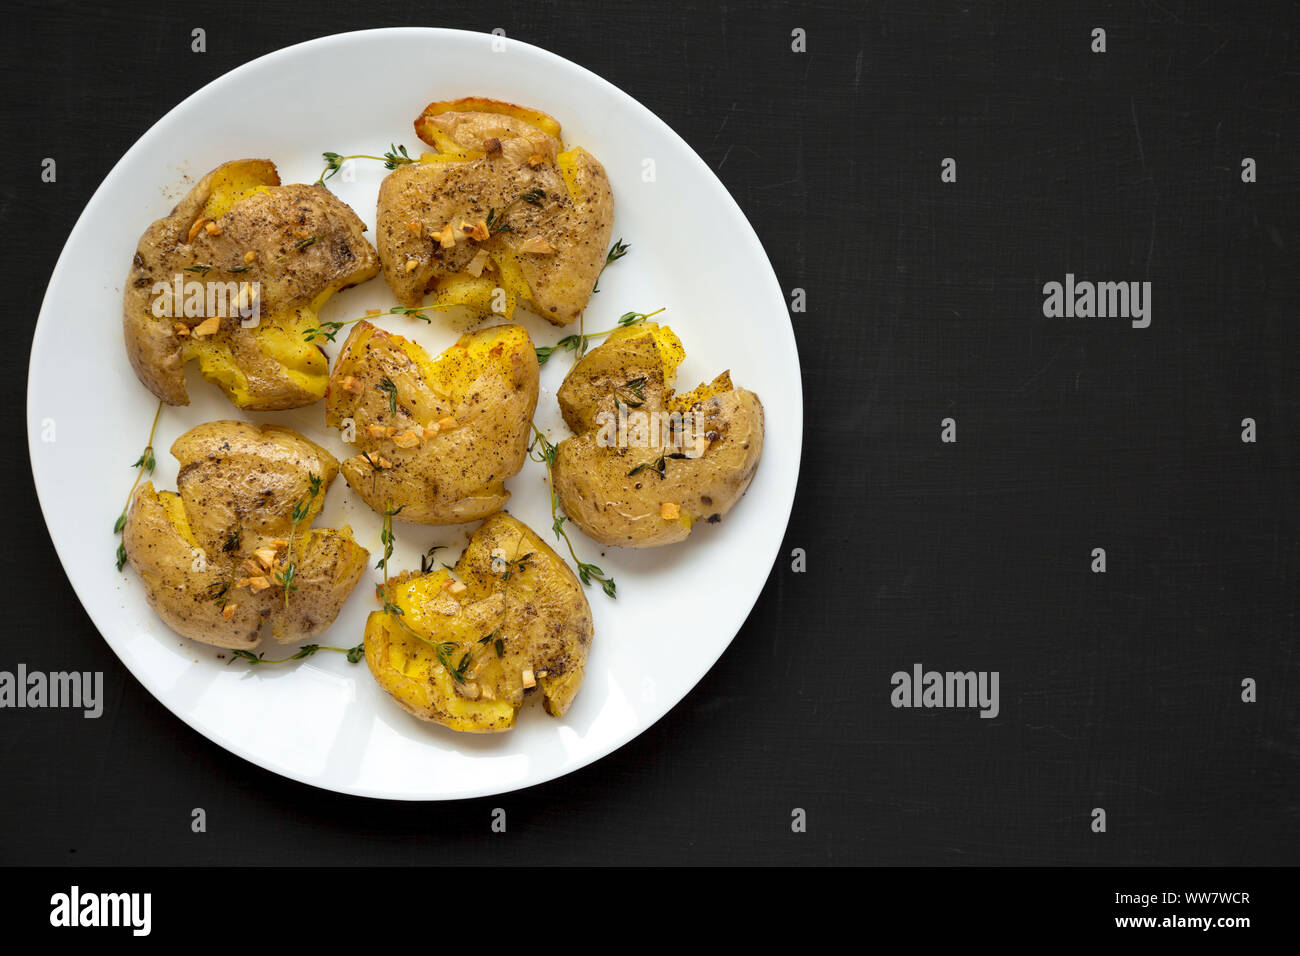 Homemade garlic thyme smashed potatoes on a white plate on a black background, top view. Flat lay, overhead, from above. Space for text. Stock Photo